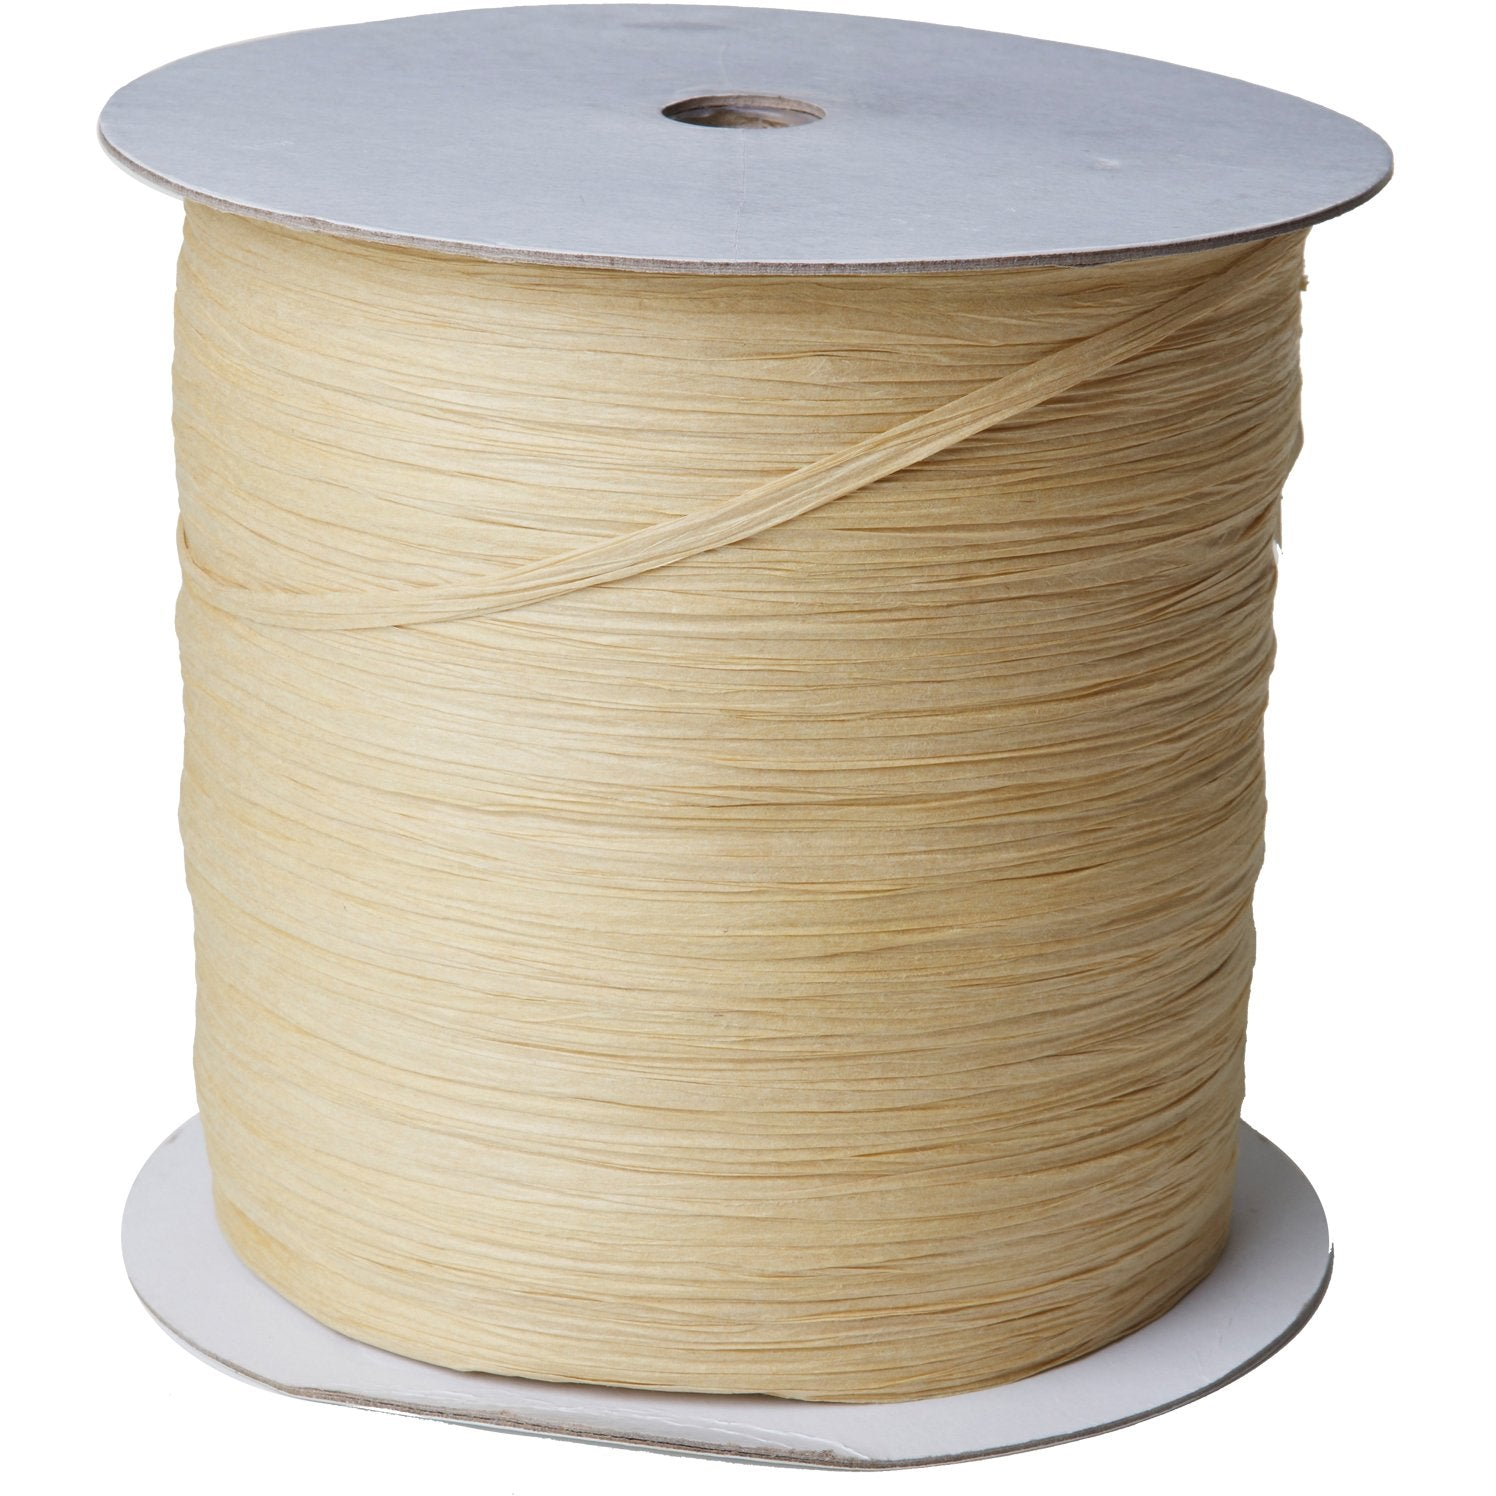 "Jillson & Roberts Paper Raffia Ribbon, 1/4"" Wide x 1000 Yards, Natural"